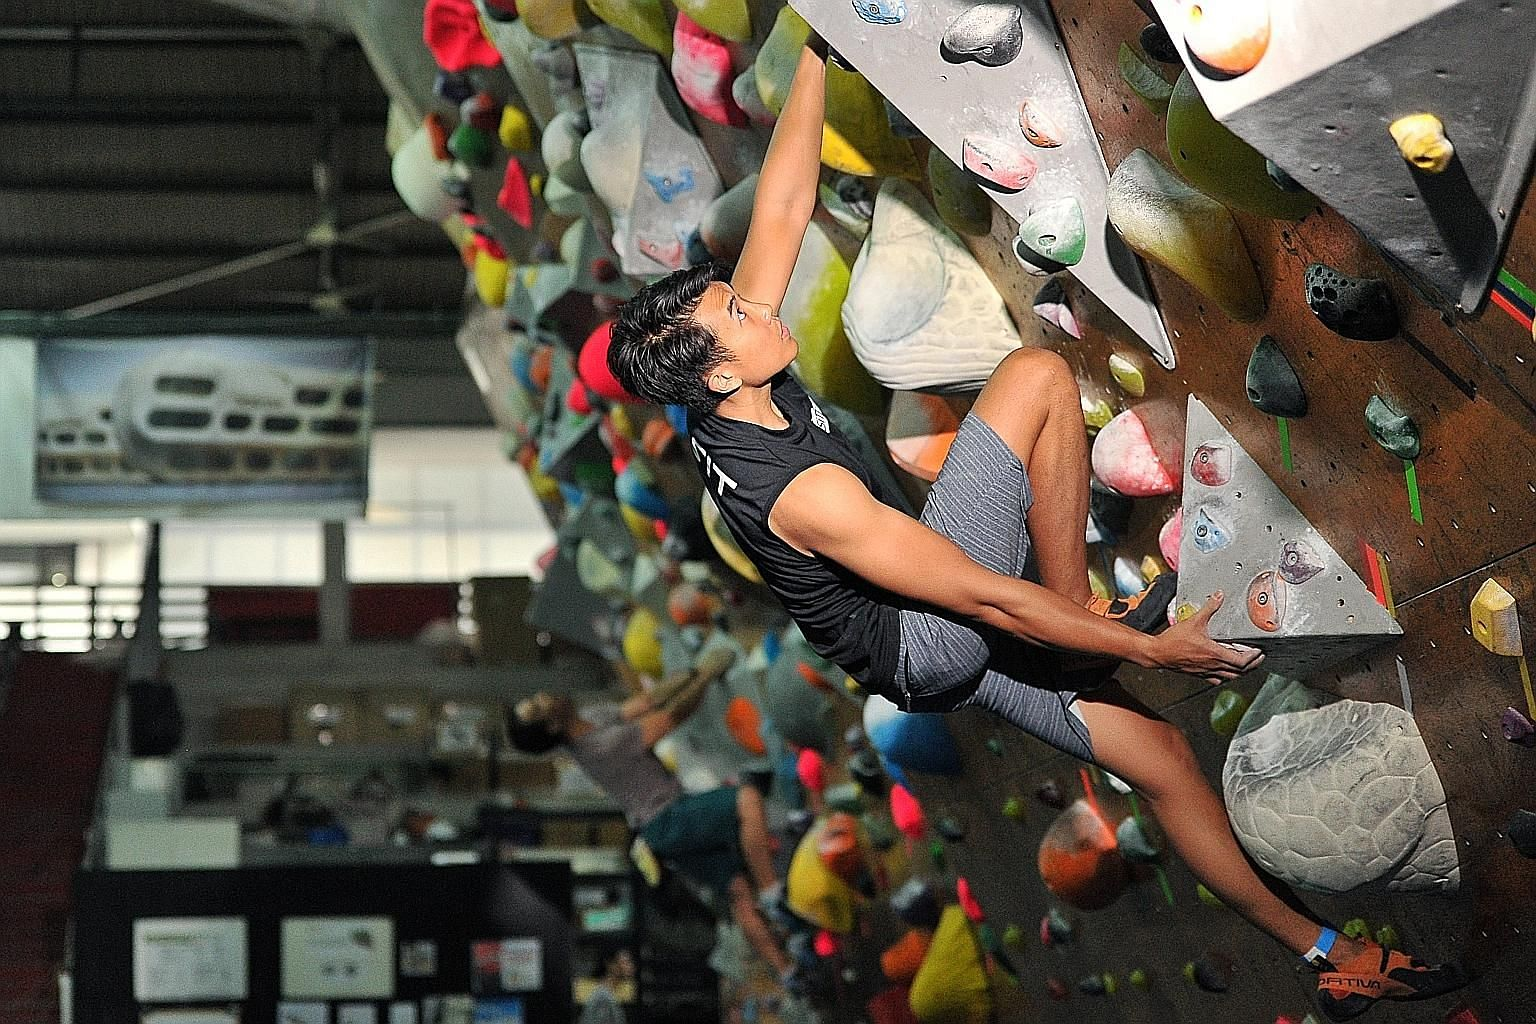 Undergraduate Brian Oh was hooked on rock climbing after feeling the adrenalin rush of the sport. He now trains three or four times a week with each session stretching for five to seven hours.